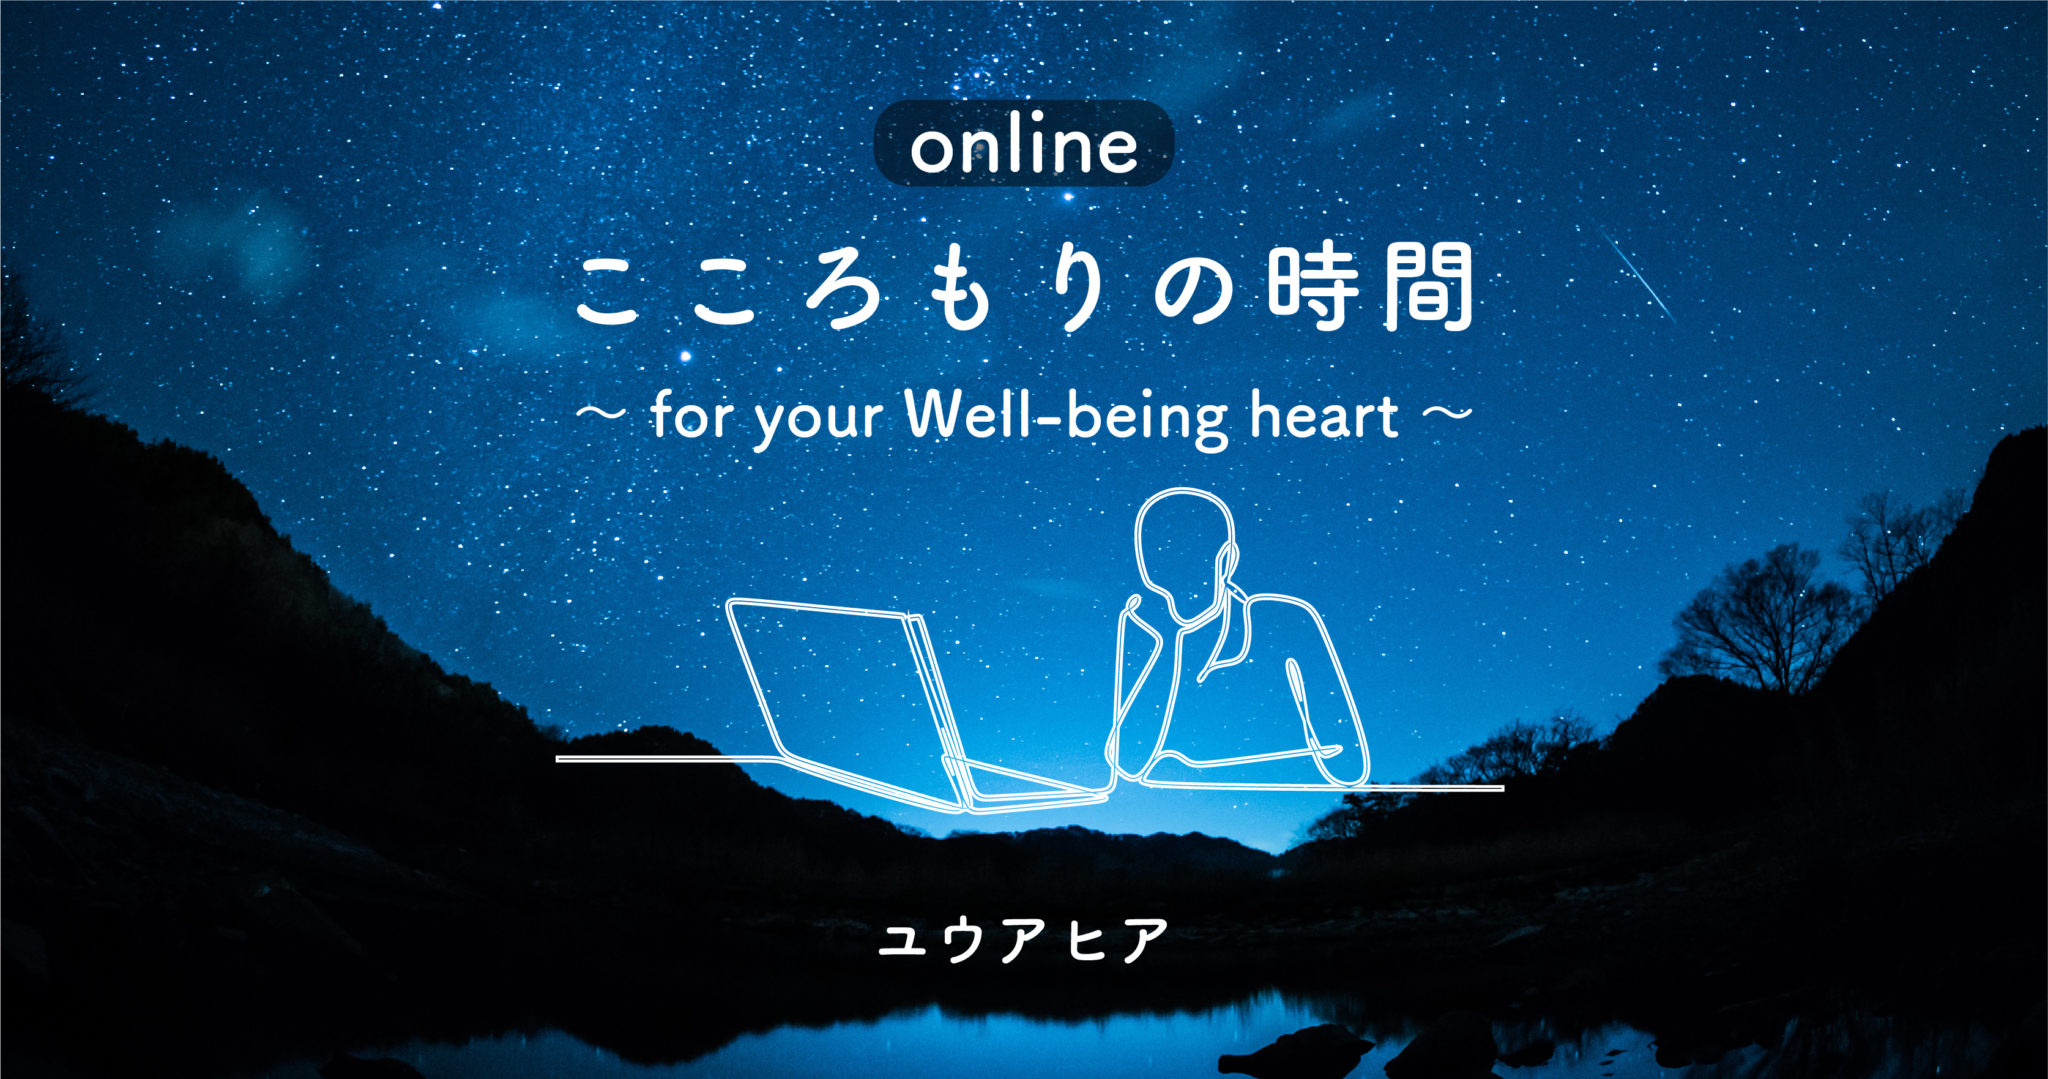 "<span class=""title"">【募集】8/26(水)こころもりの時間 ~for your Well-being heart~ オンラインイベント</span>"